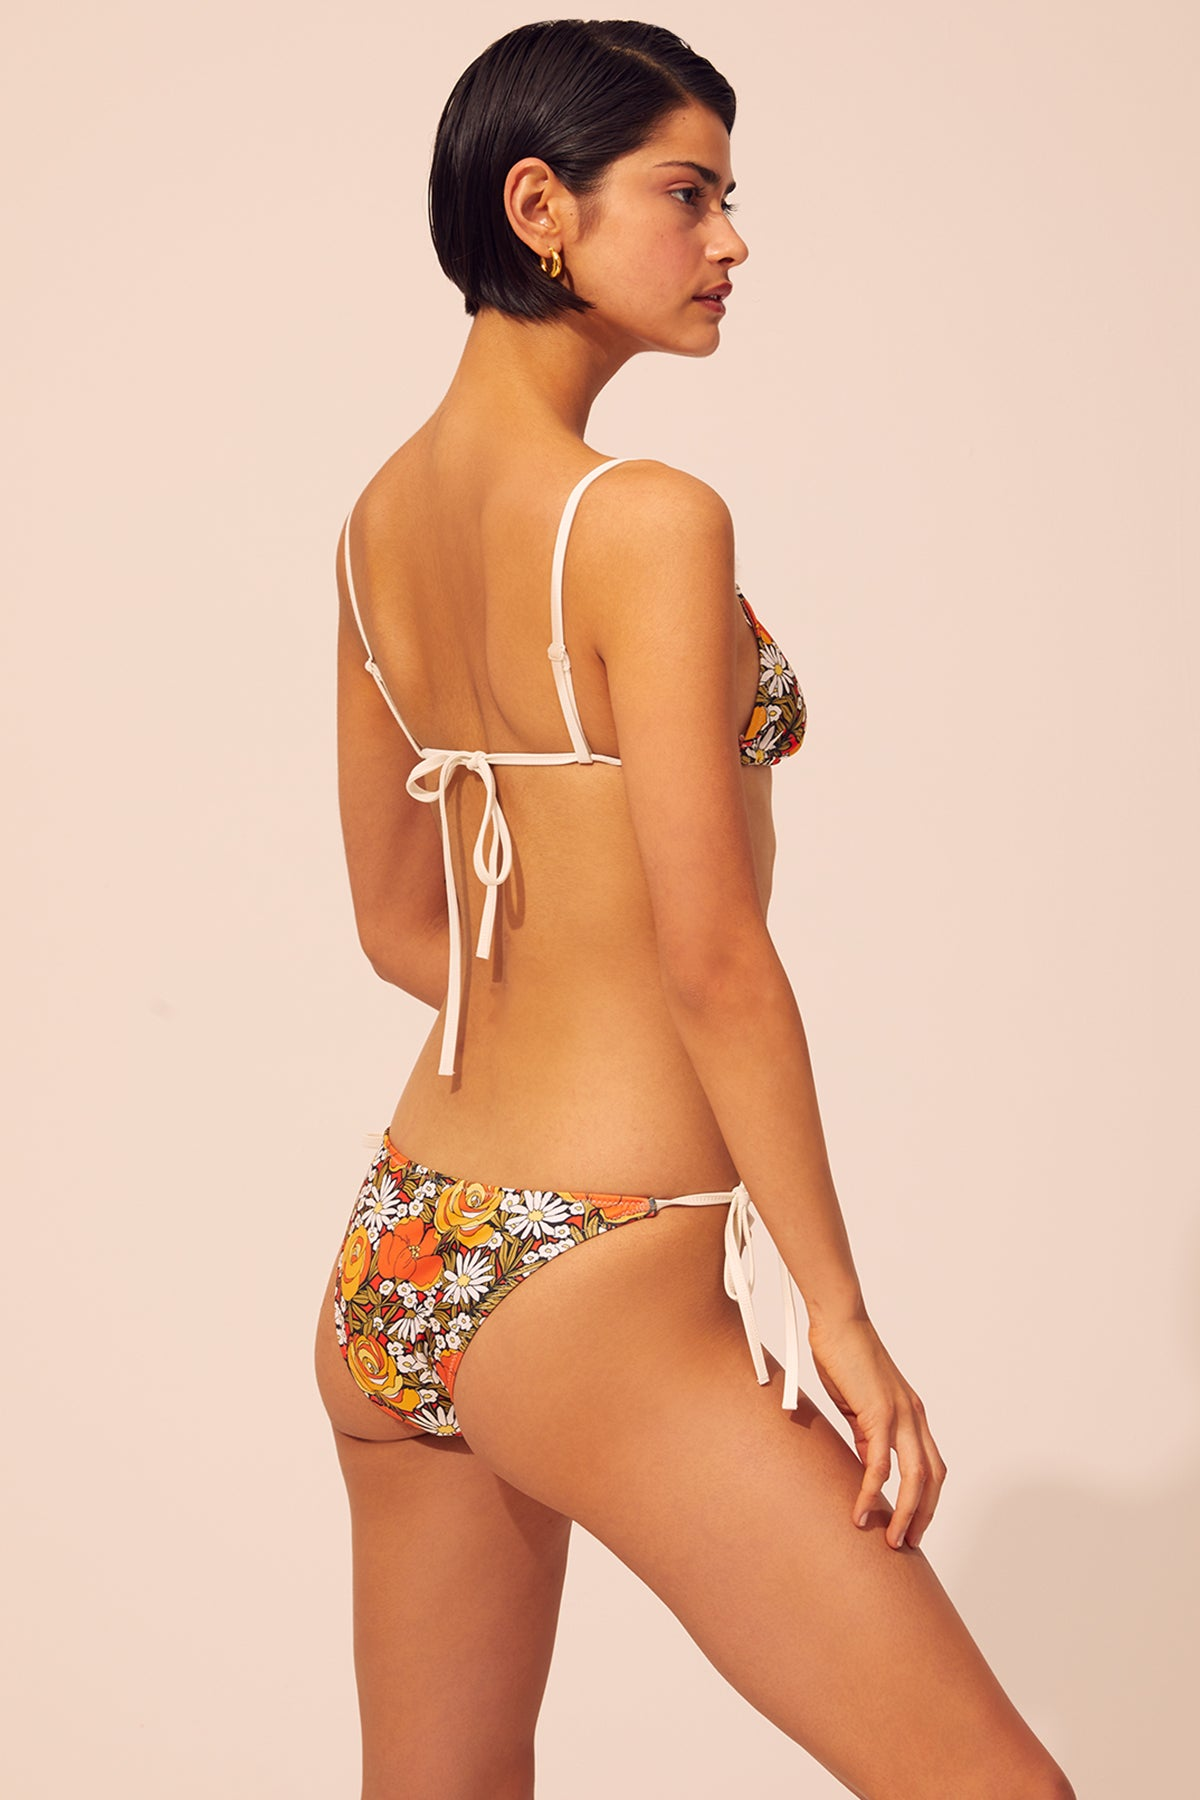 The Woodstock String Bikini